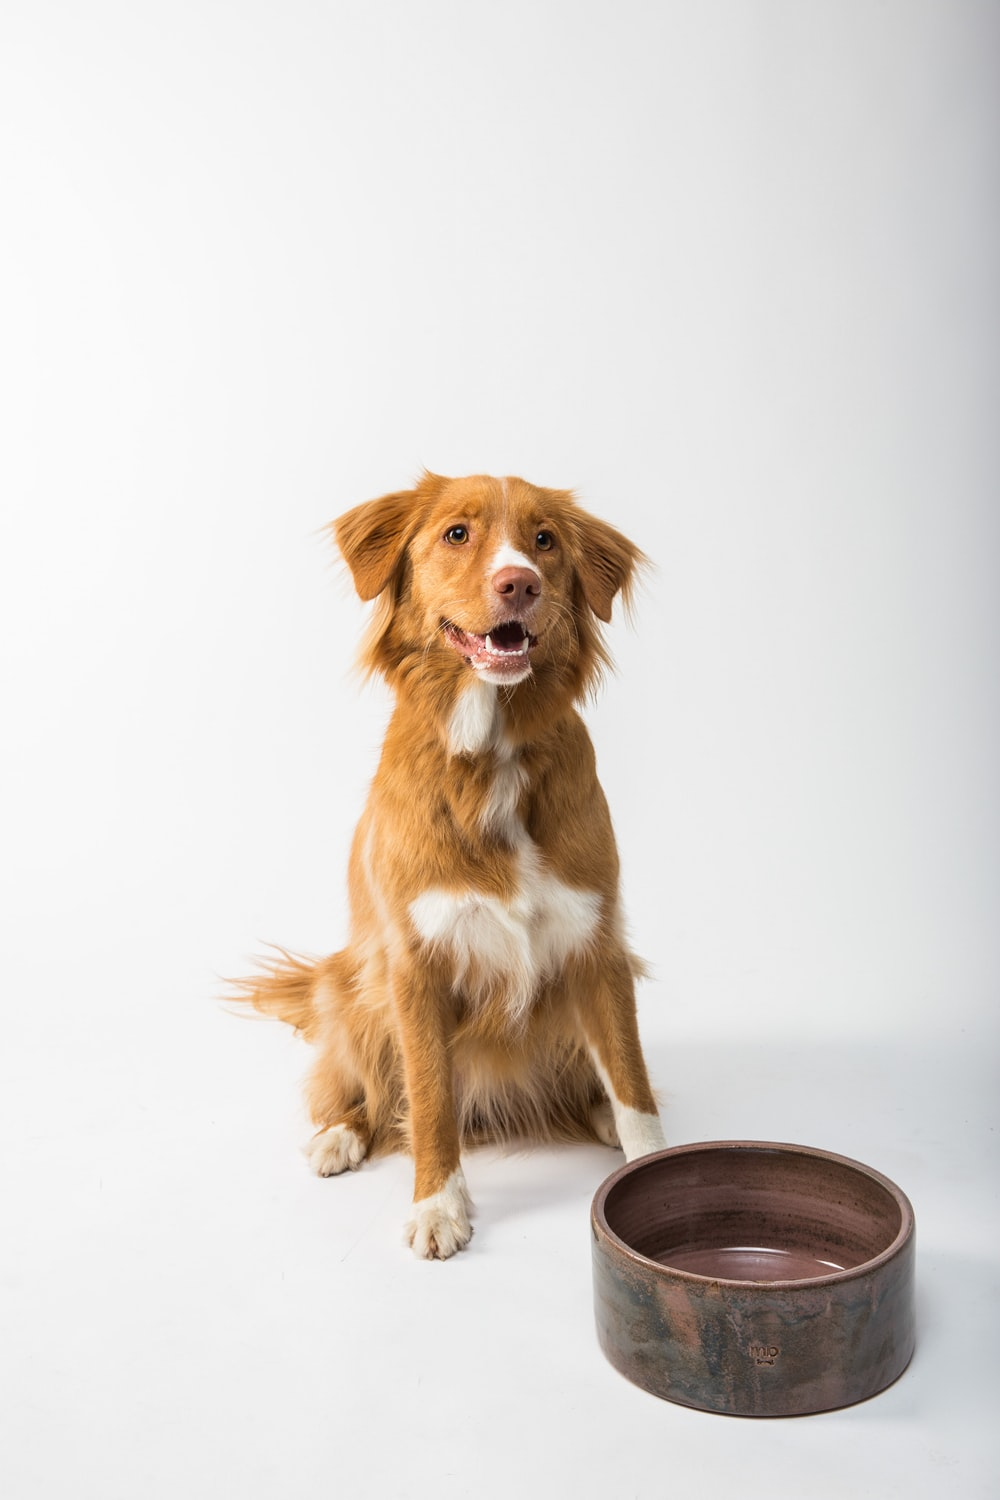 brown and white long coated dog sitting on brown wooden round table